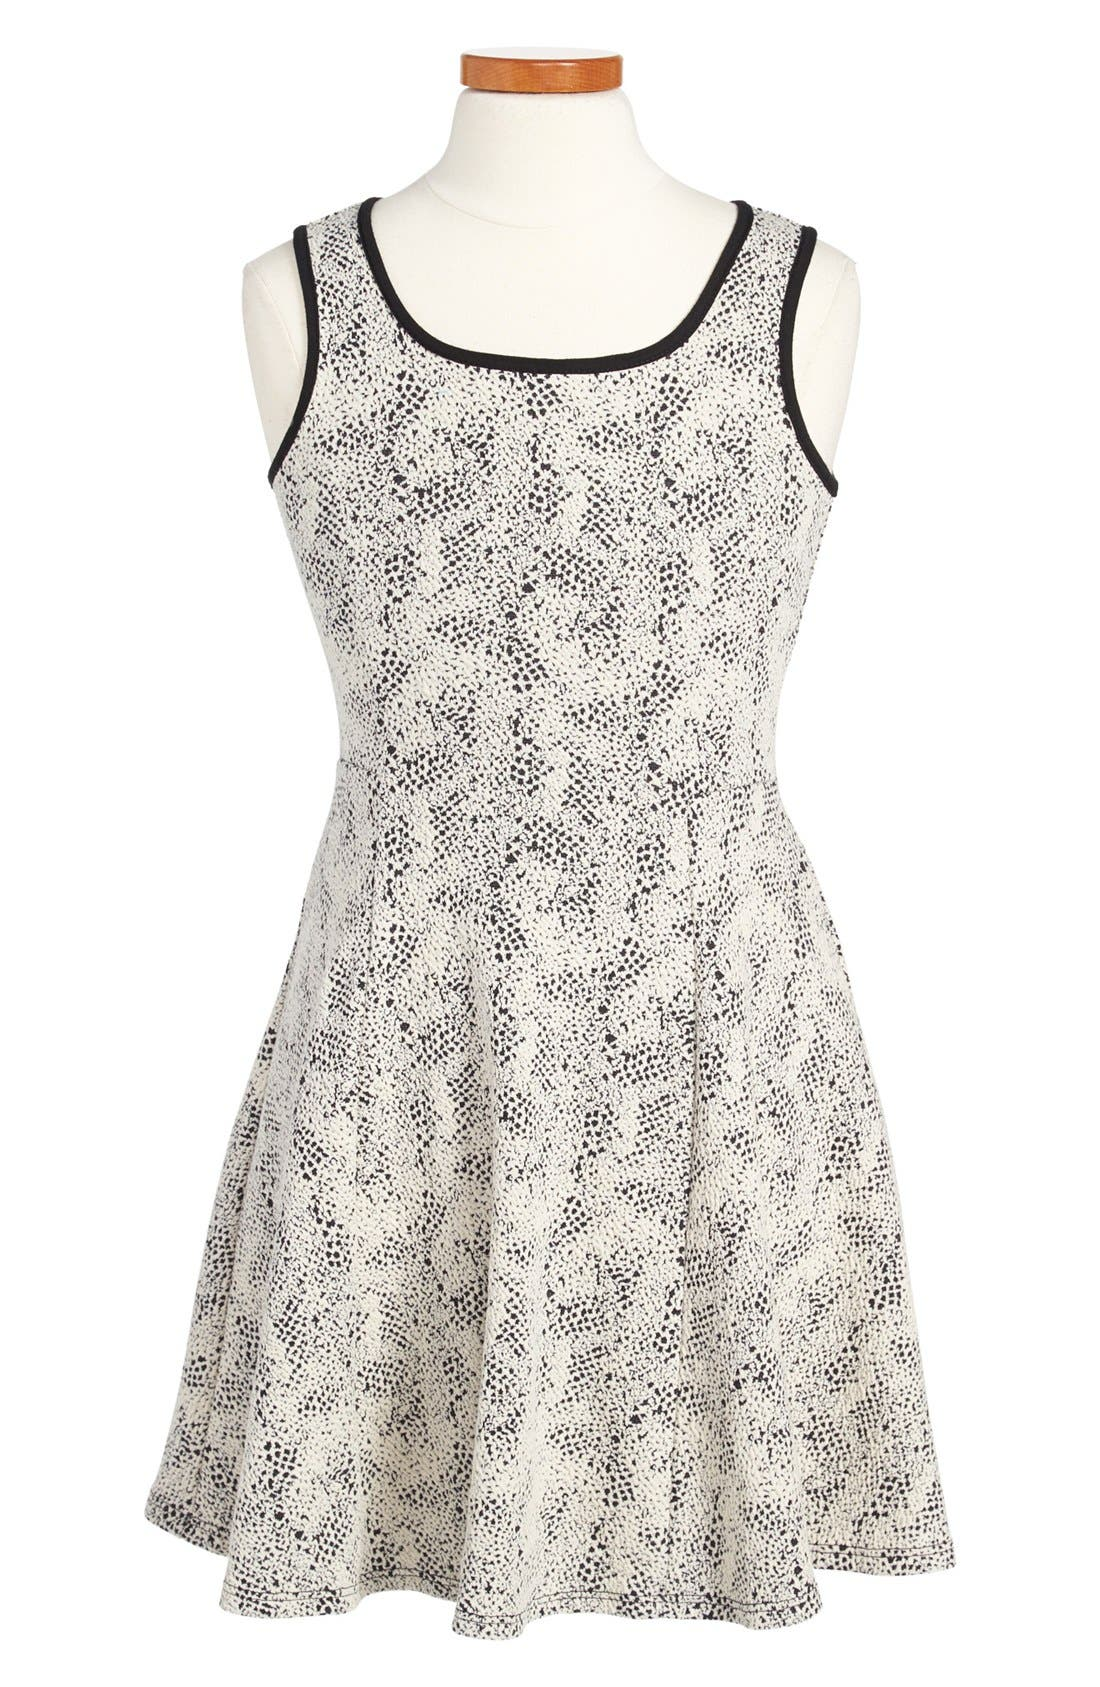 Alternate Image 1 Selected - Soprano Sleeveless Knit Skater Dress (Little Girls & Big Girls)